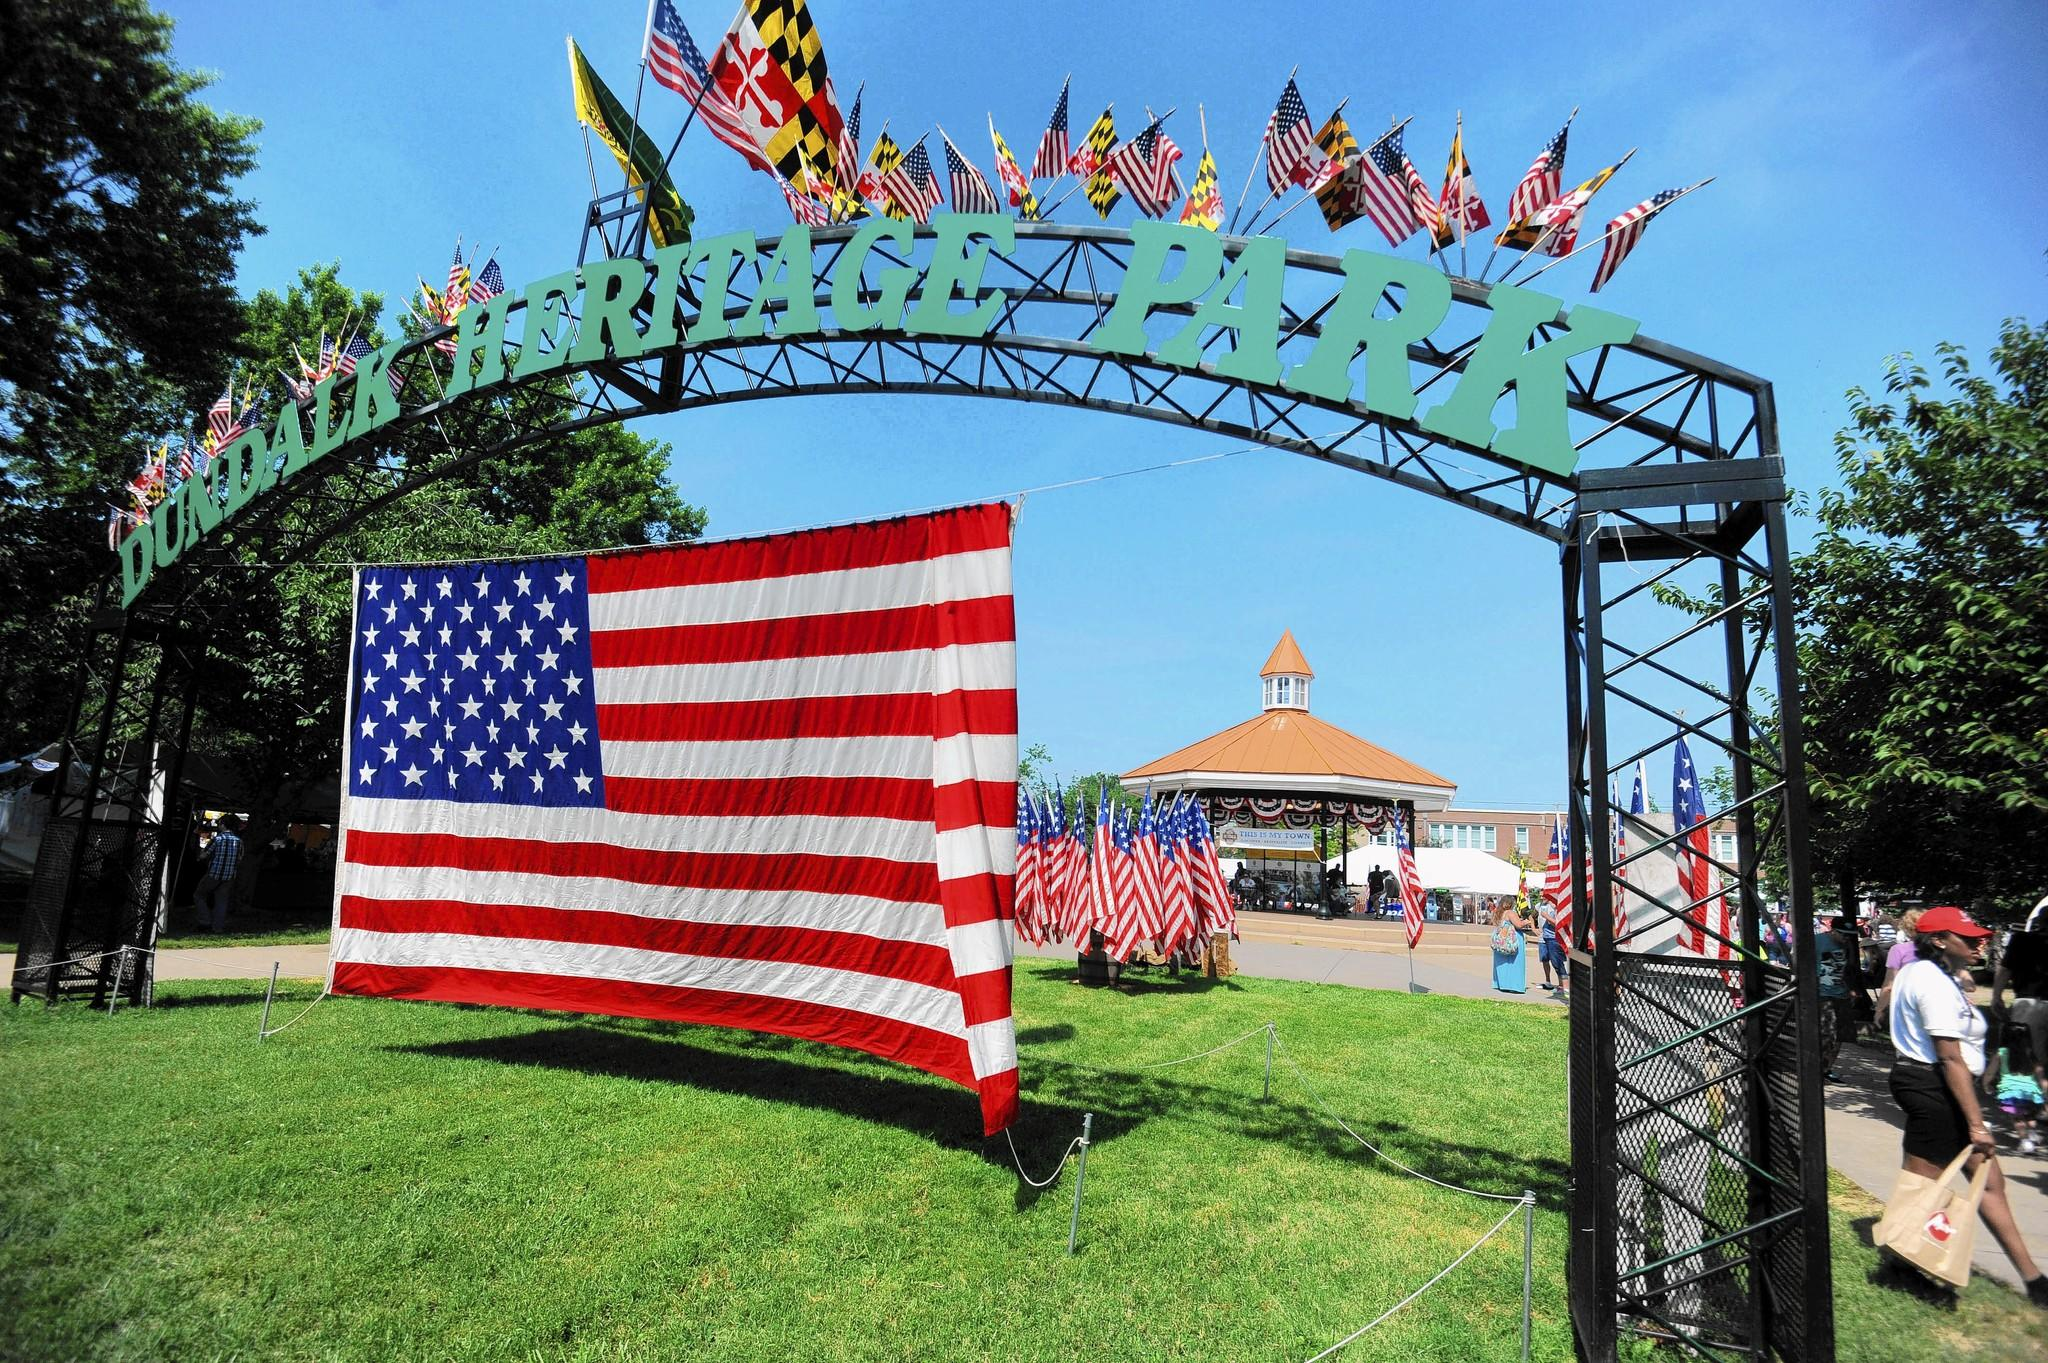 American flags greet visitors entering the Dundalk Heritage Fair at Dundalk Heritage Park.